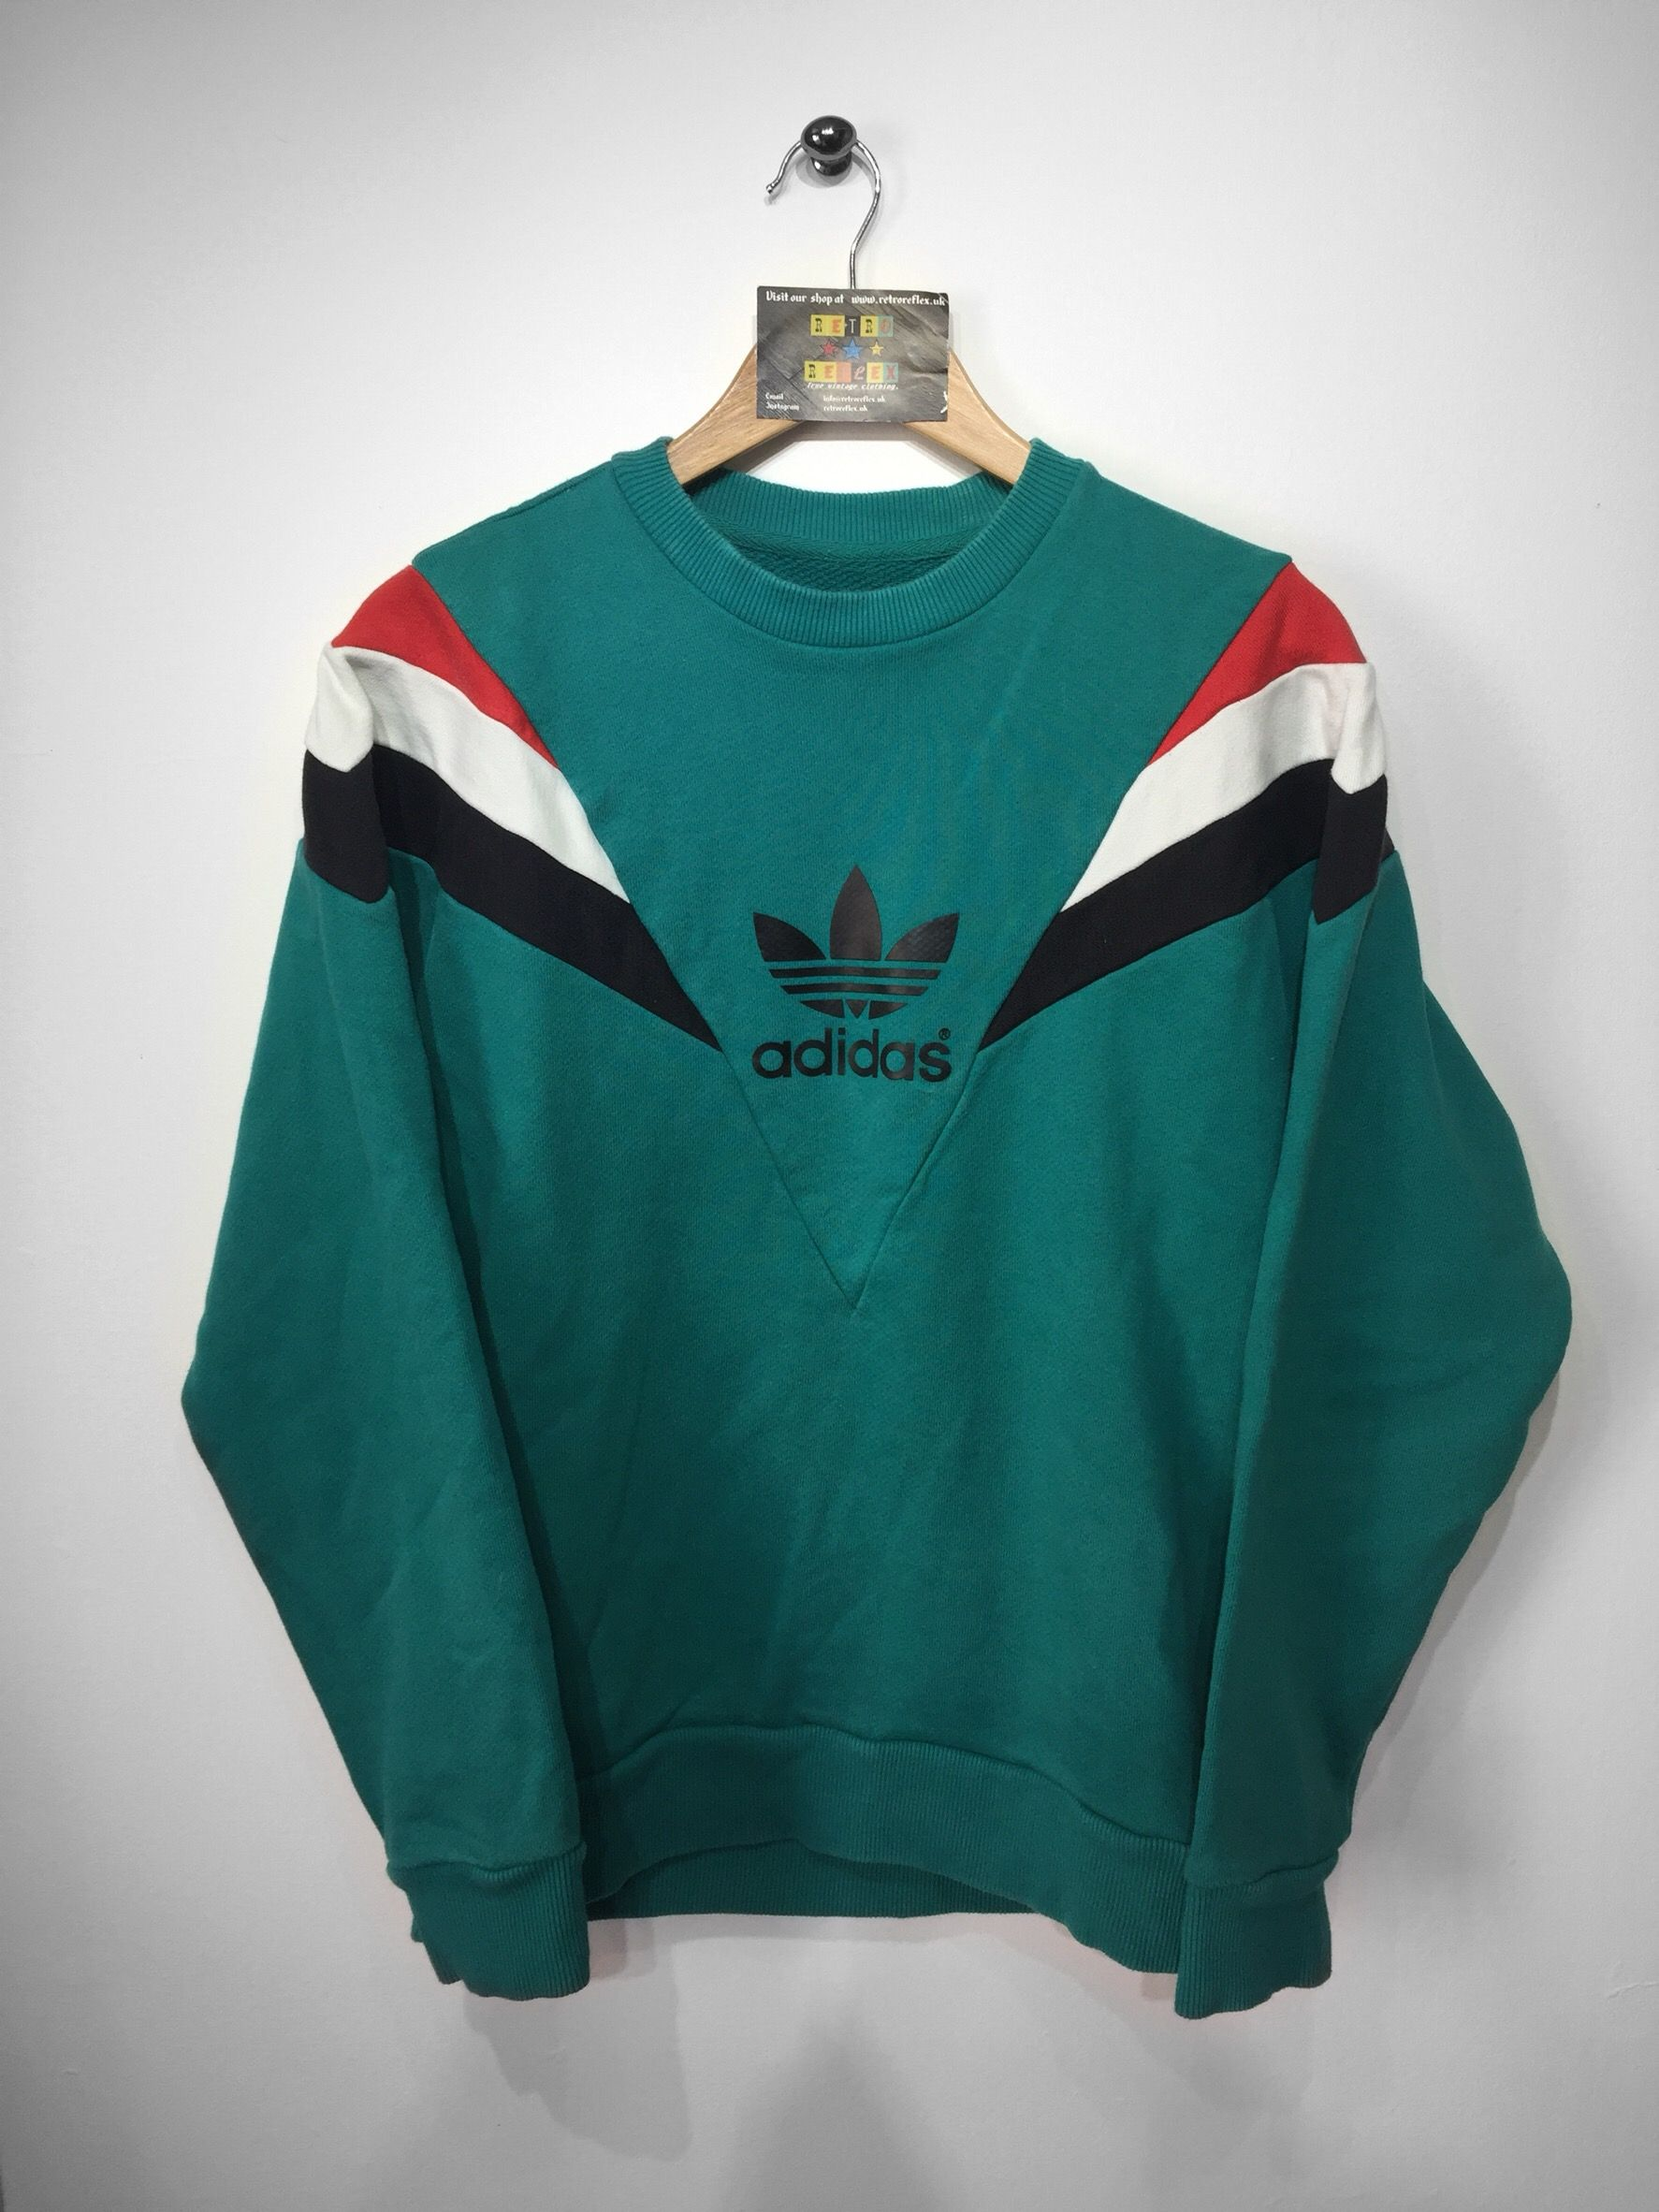 29 On In 2019 Vintage Outfits Adidas Retro Clothes